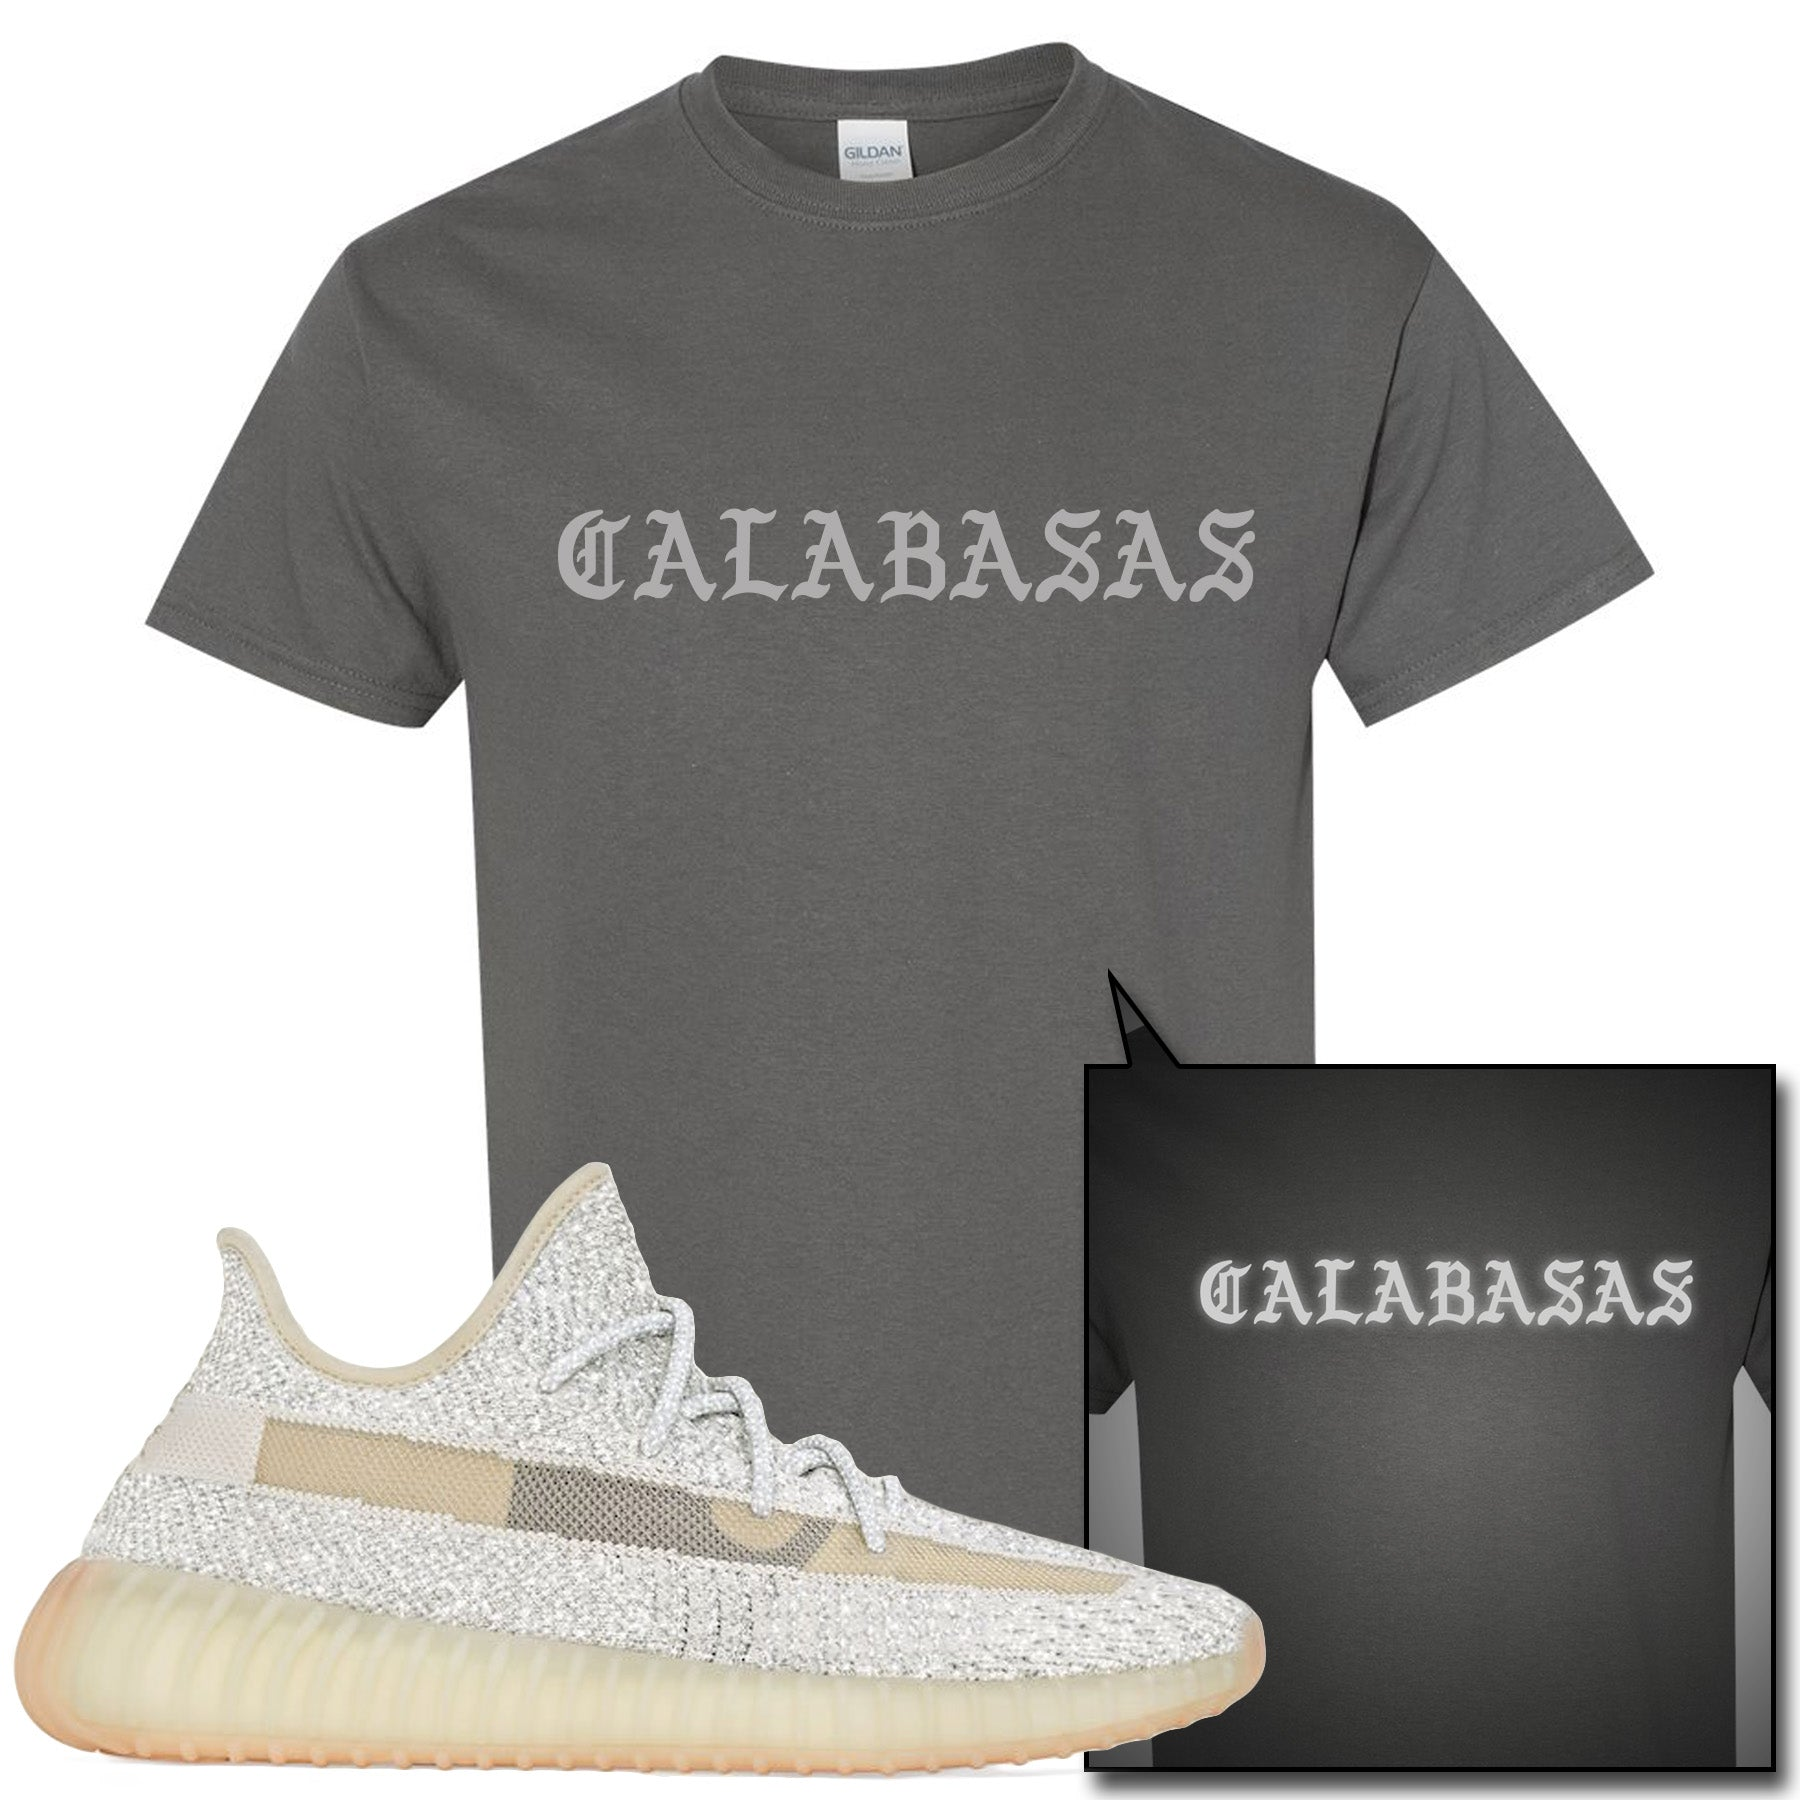 Gray T Calabasas V2 Yeezy Reflective Sneaker Boost Lundmark Shirt Match Adidas Charcoal 350 yvmO0N8nw